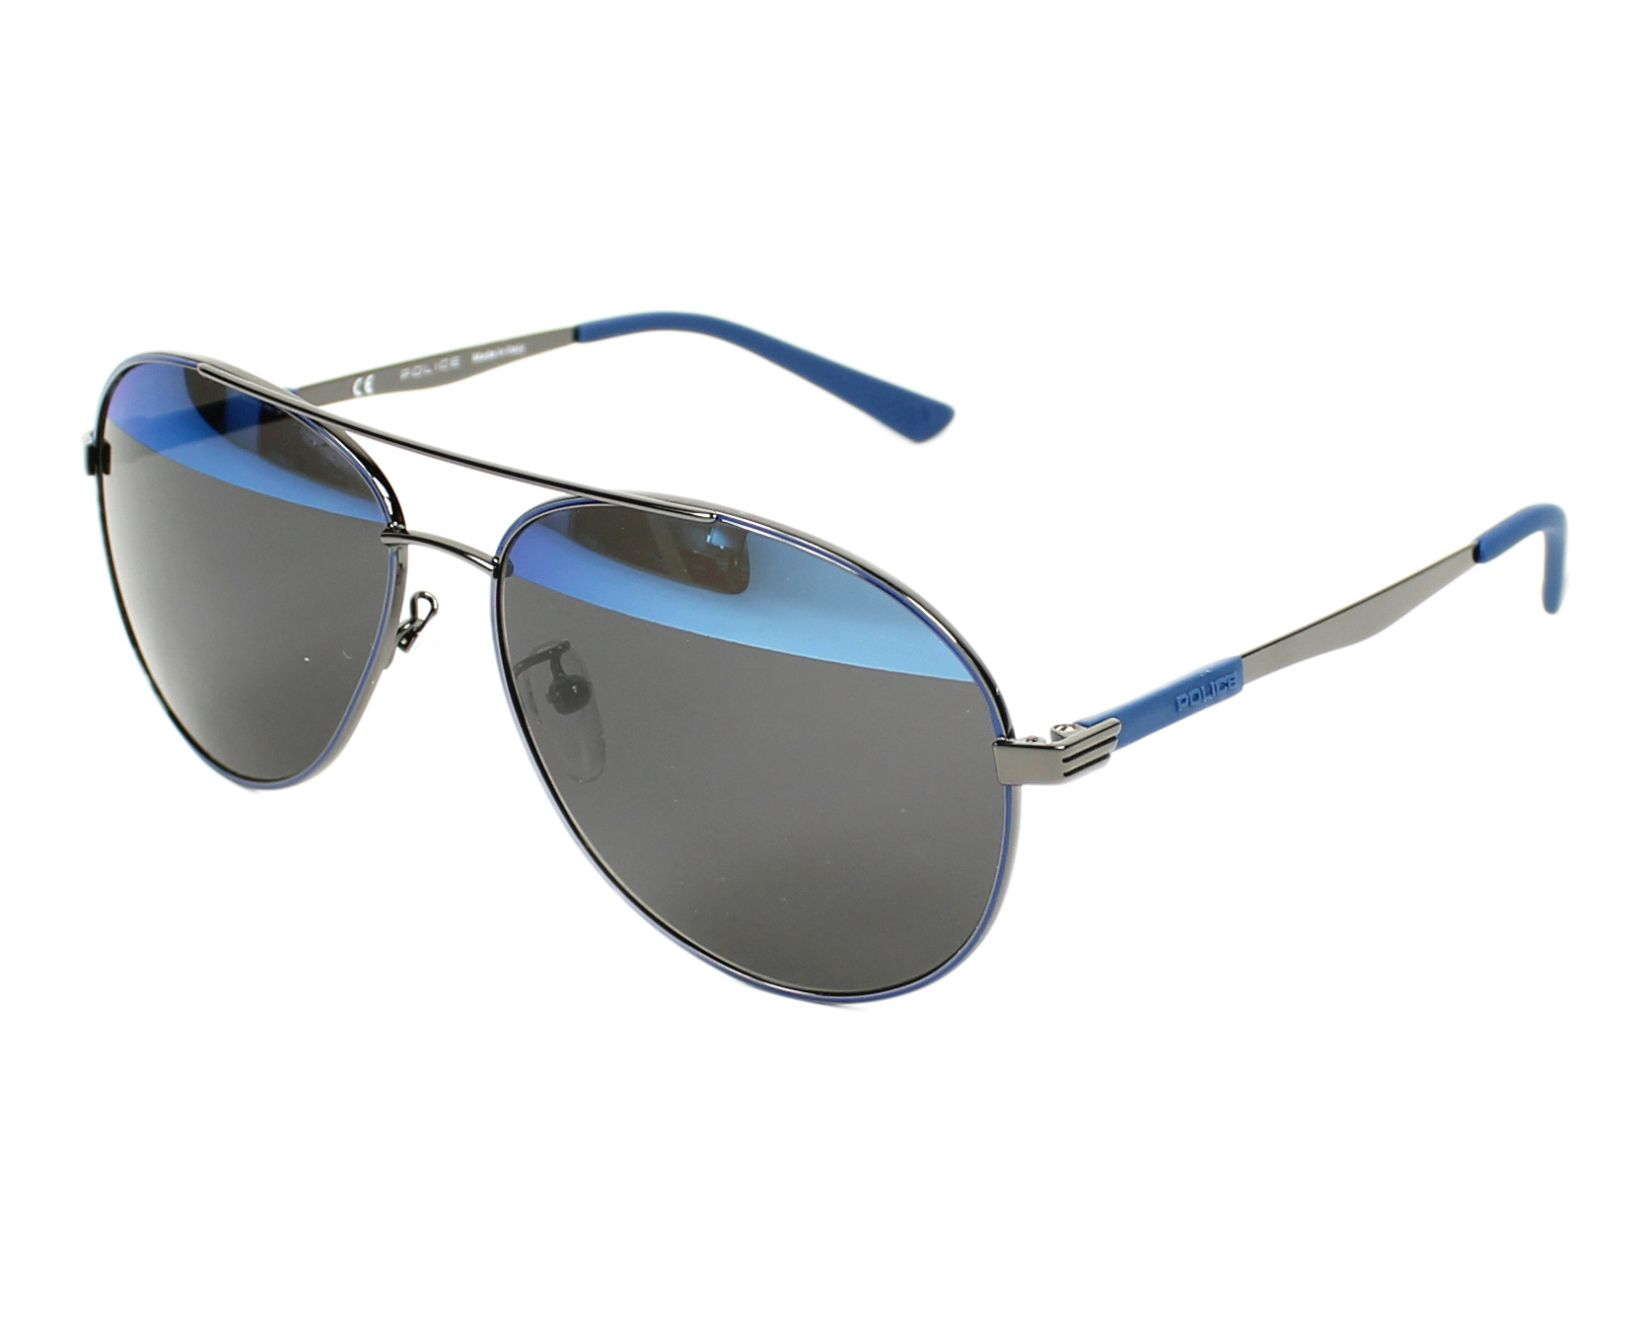 180e76a909e Police - Buy Police sunglasses online at low prices